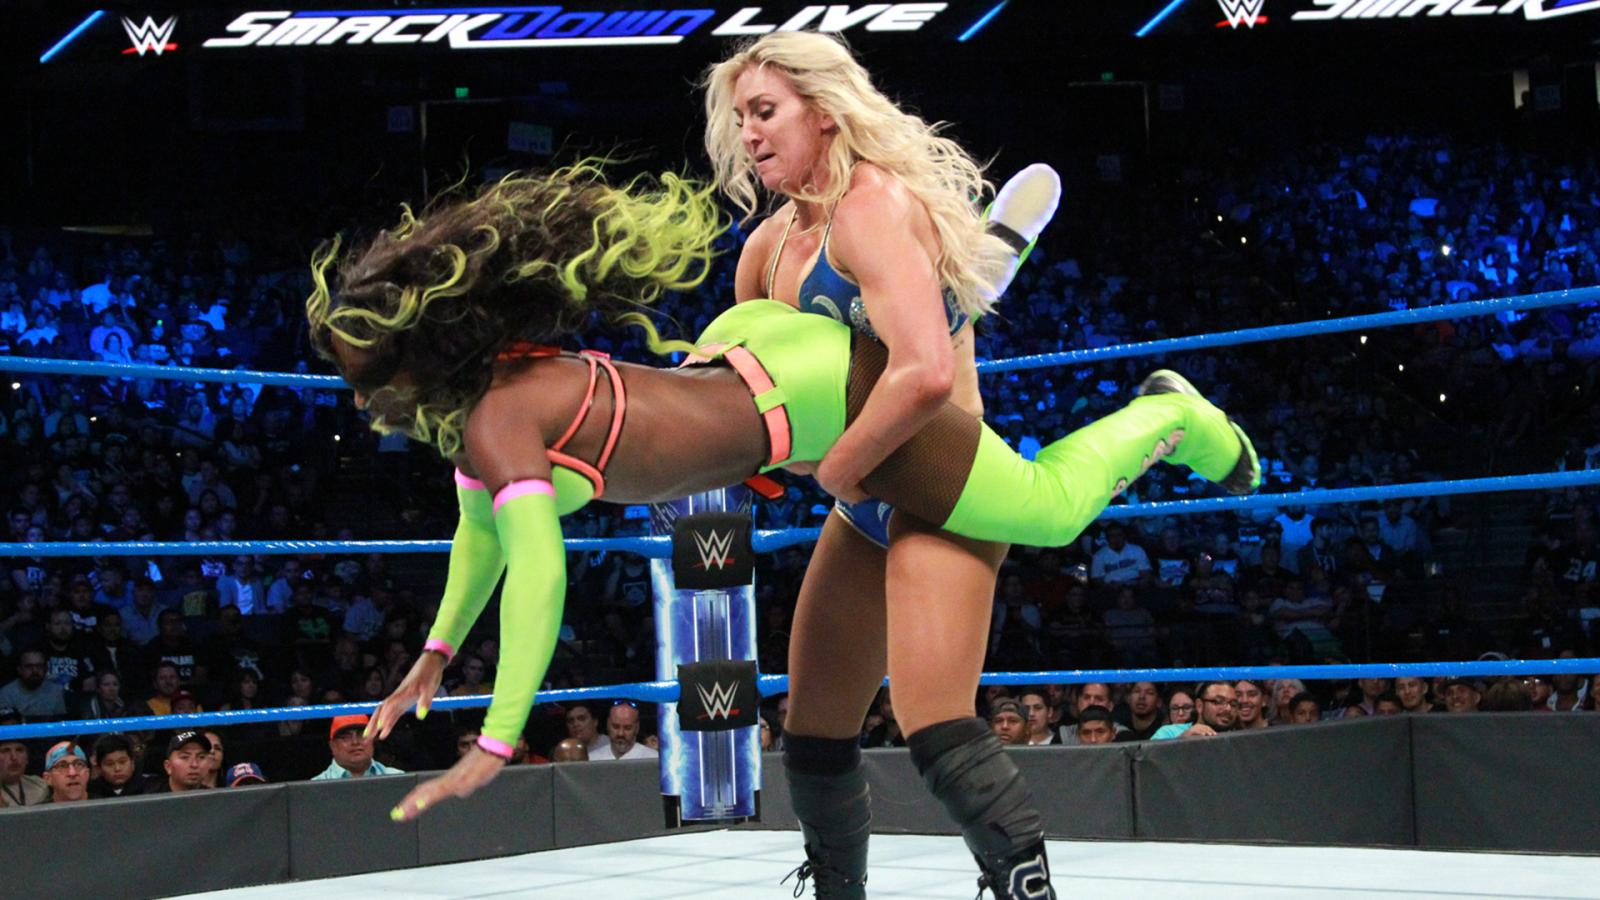 SmackDown Live Moments from Oakland